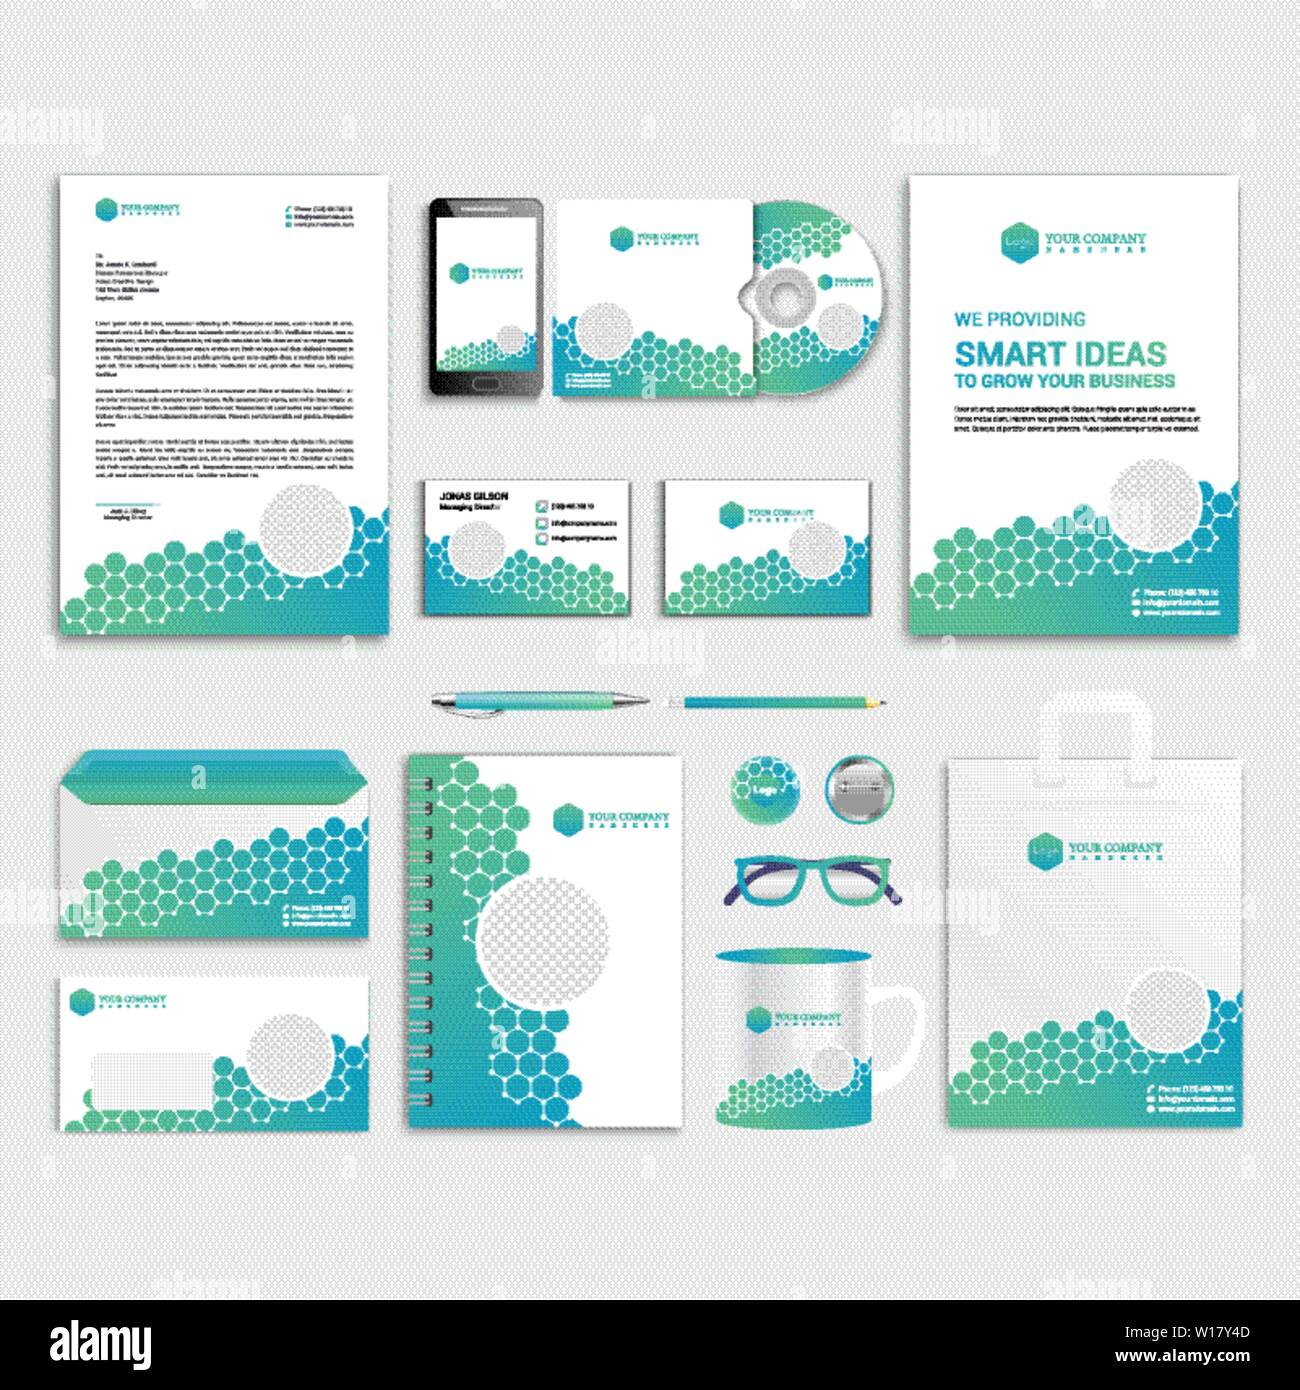 Corporate Honeycomb brand identity design with photo ...